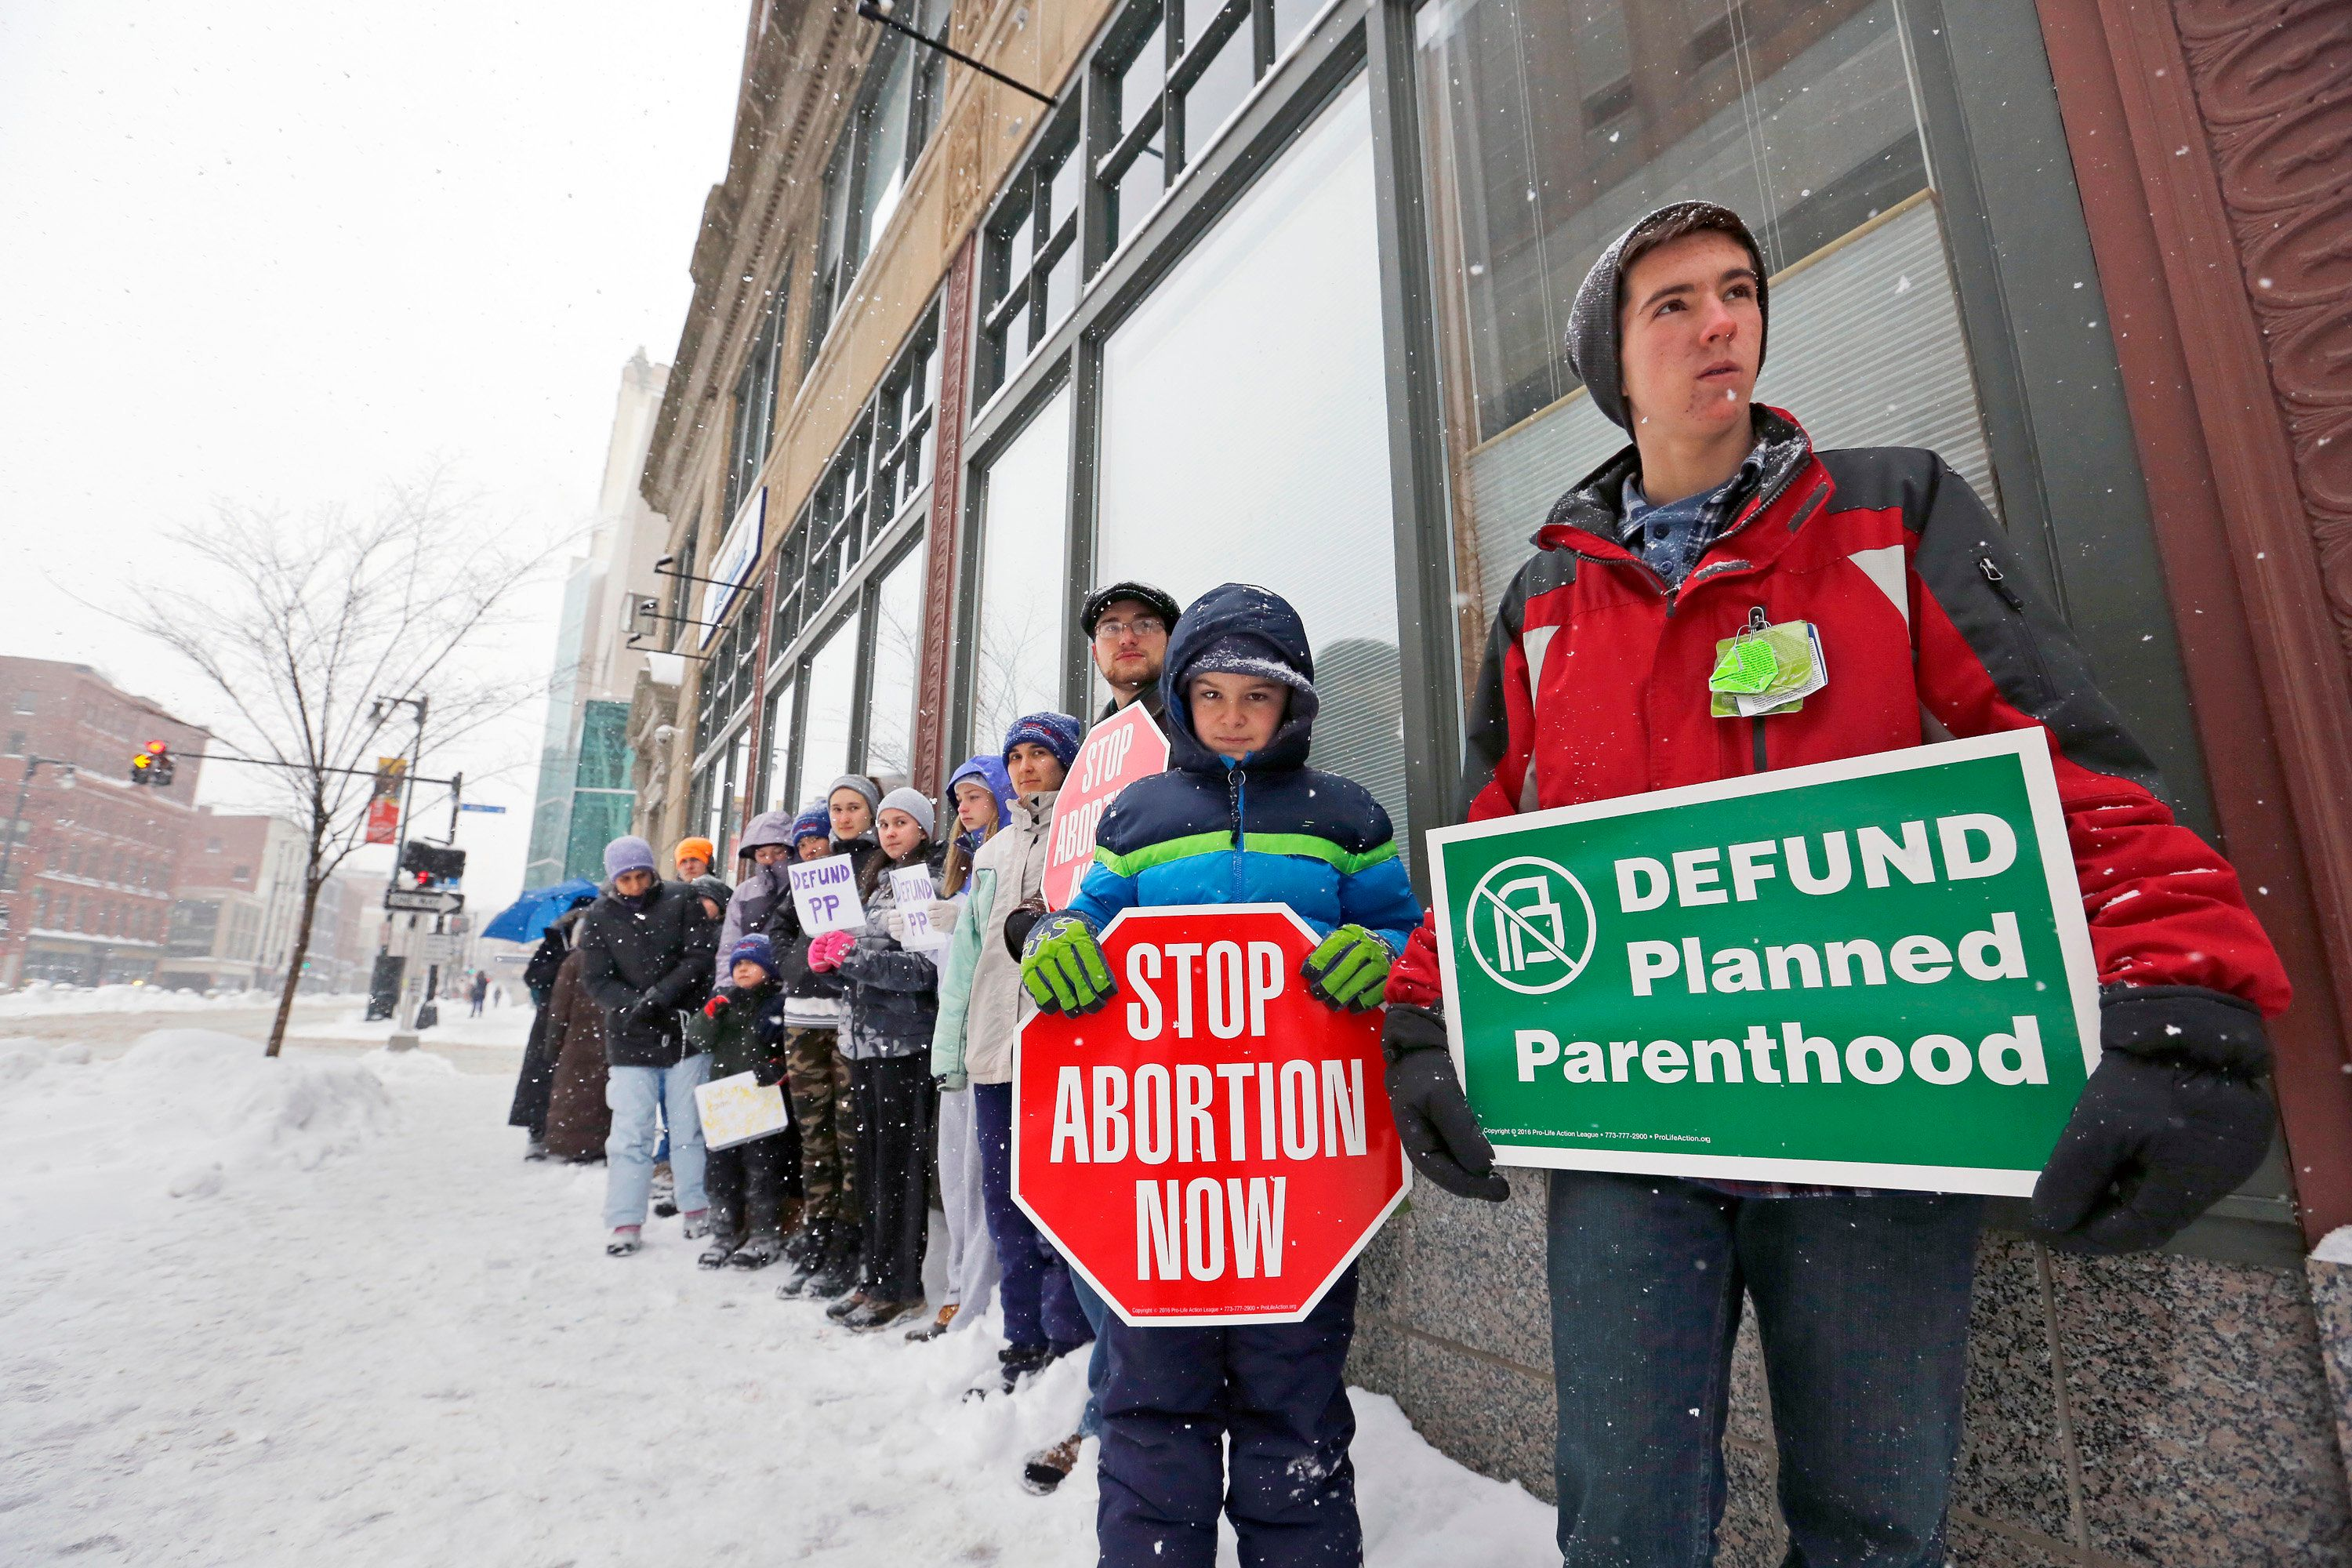 Anti-abortion protestors stand outside a Planned Parenthood clinic in Portland, Maine in February.